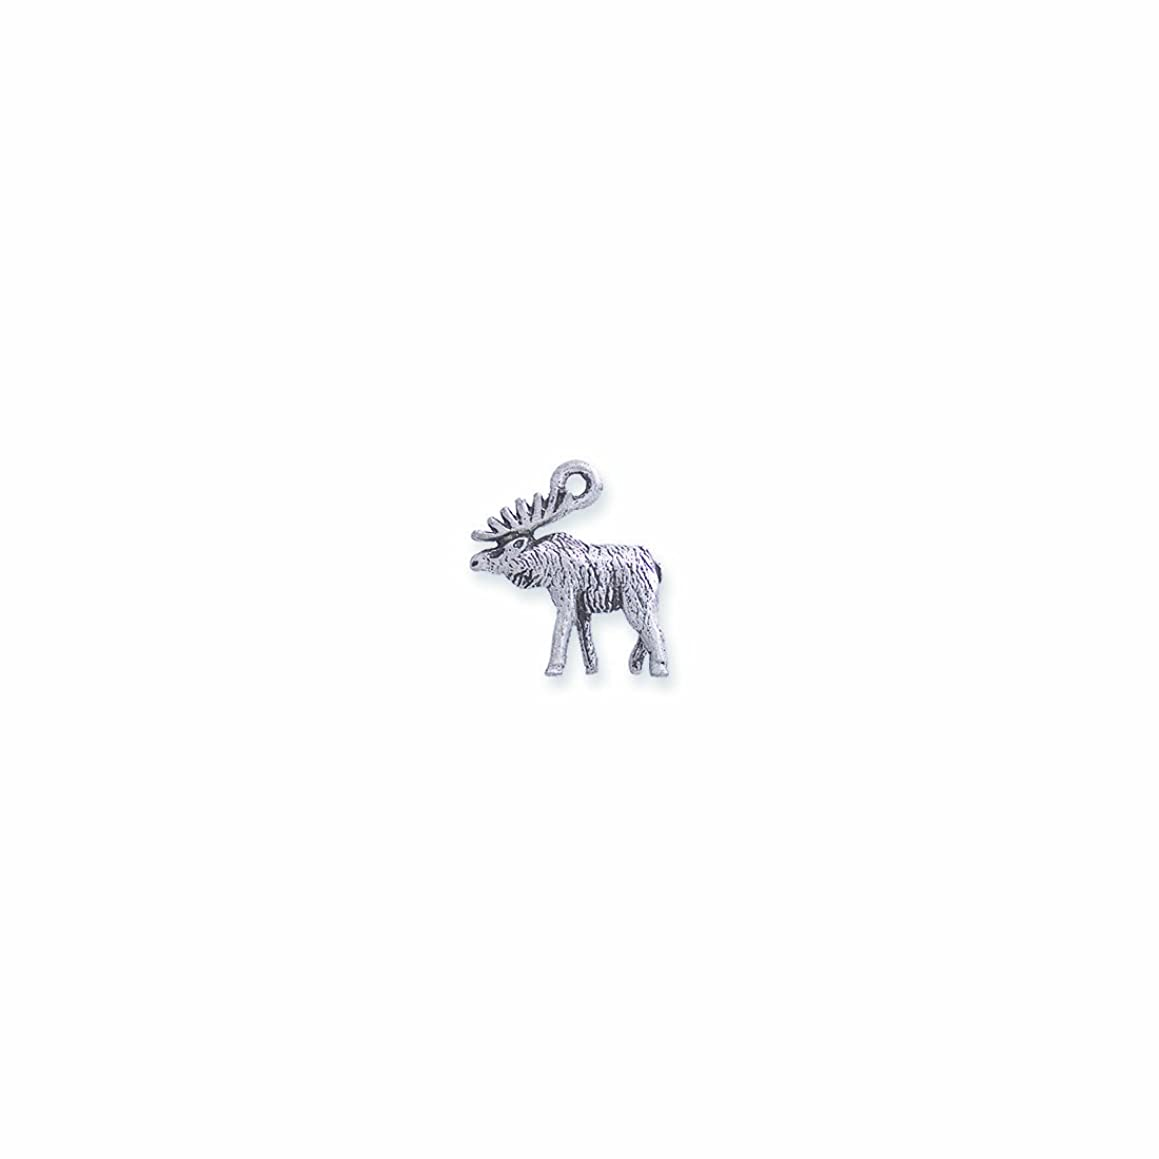 Shipwreck Beads Pewter Moose Charm, Silver, 15 by 17mm, 4-Piece